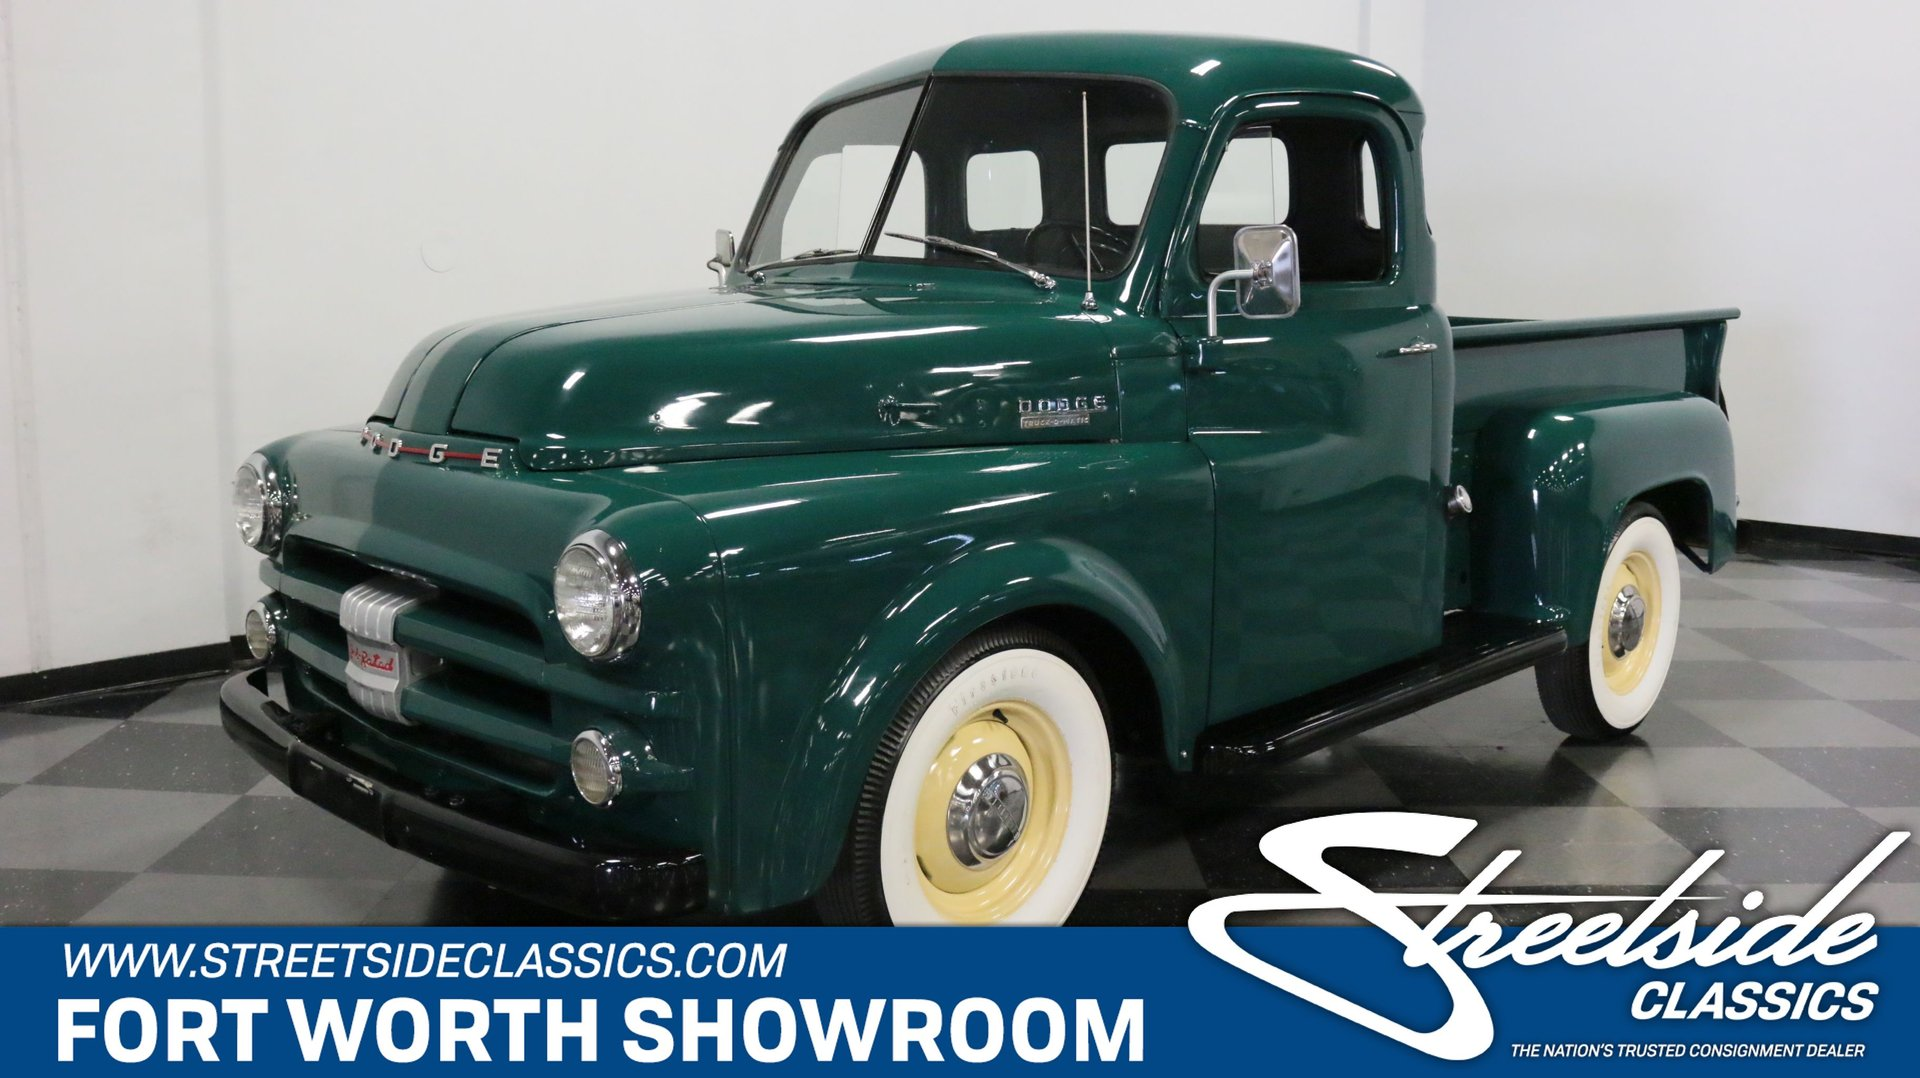 1953 Dodge B Series Truck Classic Cars For Sale Streetside Classics The Nation S 1 Consignment Dealer